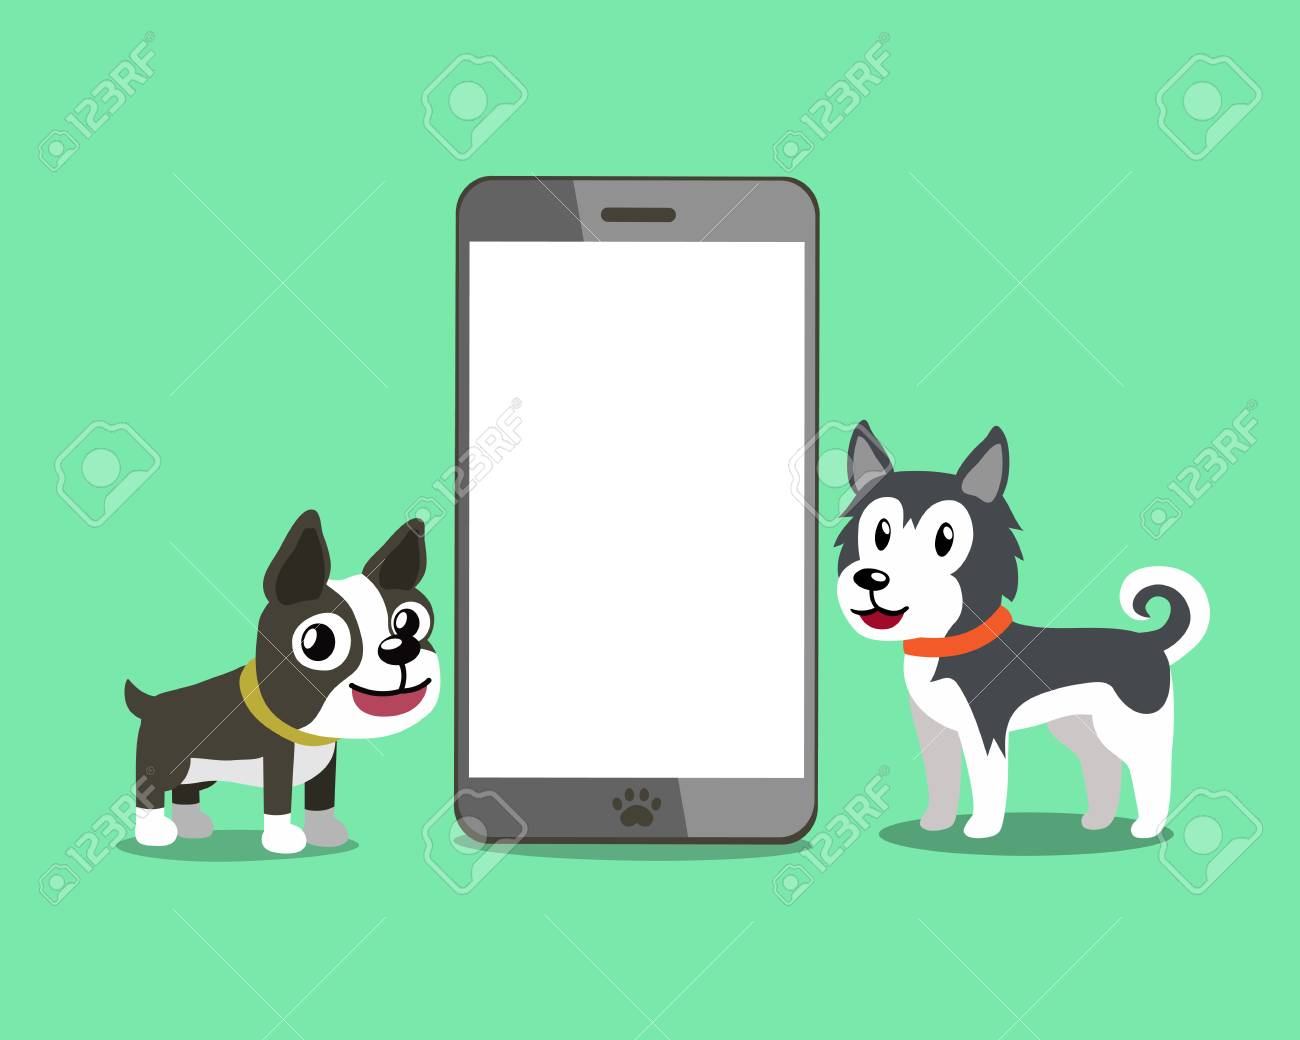 Vector Cartoon Character Boston Terrier Dog Poses Stock Illustration -  Download Image Now - iStock